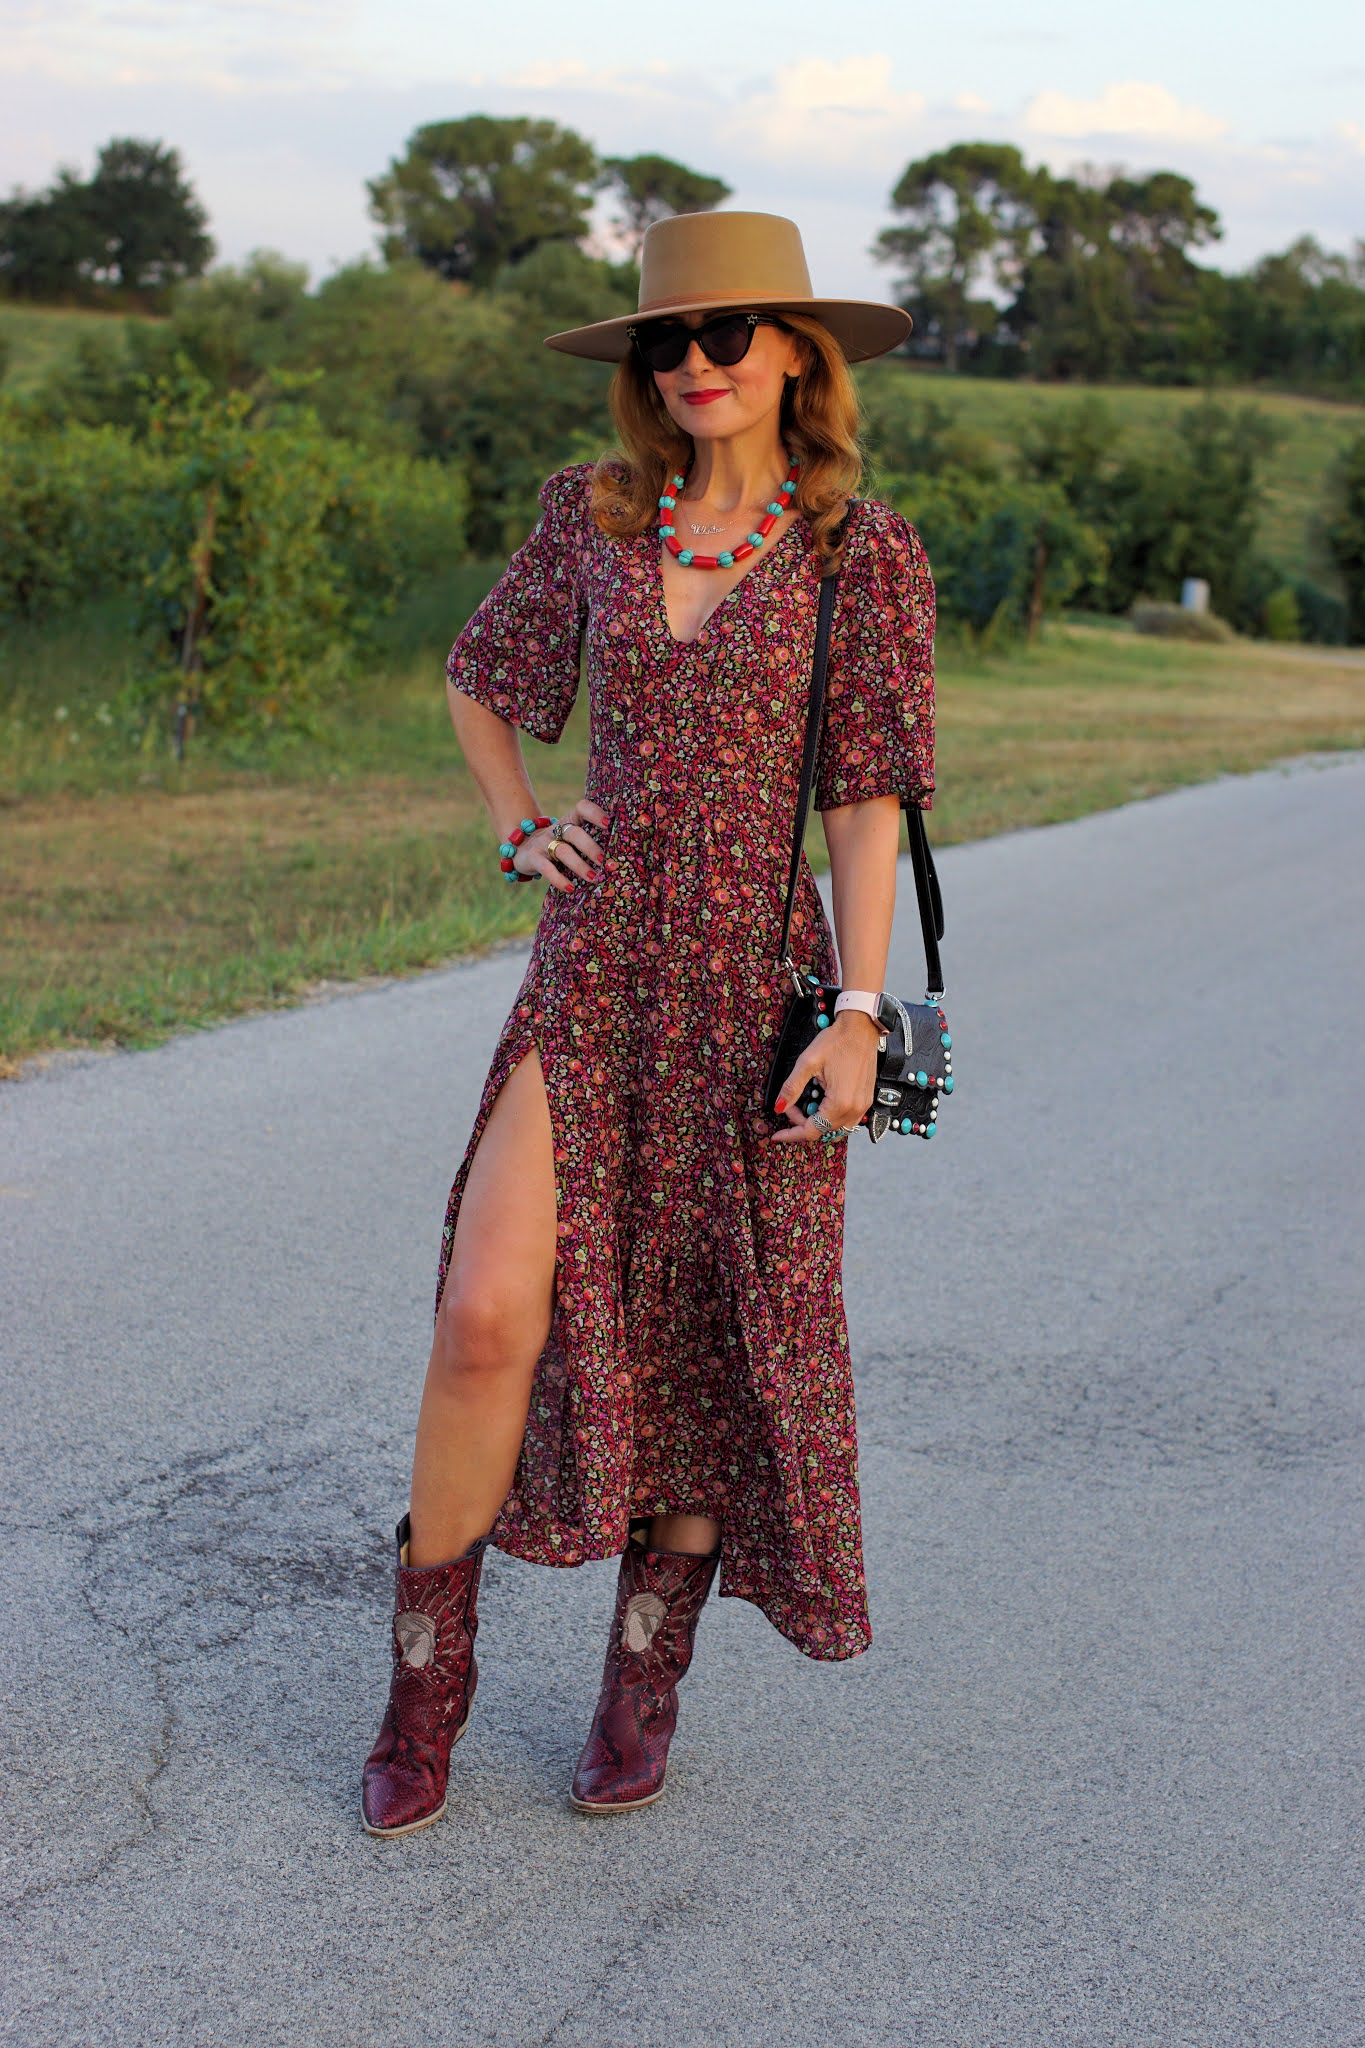 A transitional western style outfit